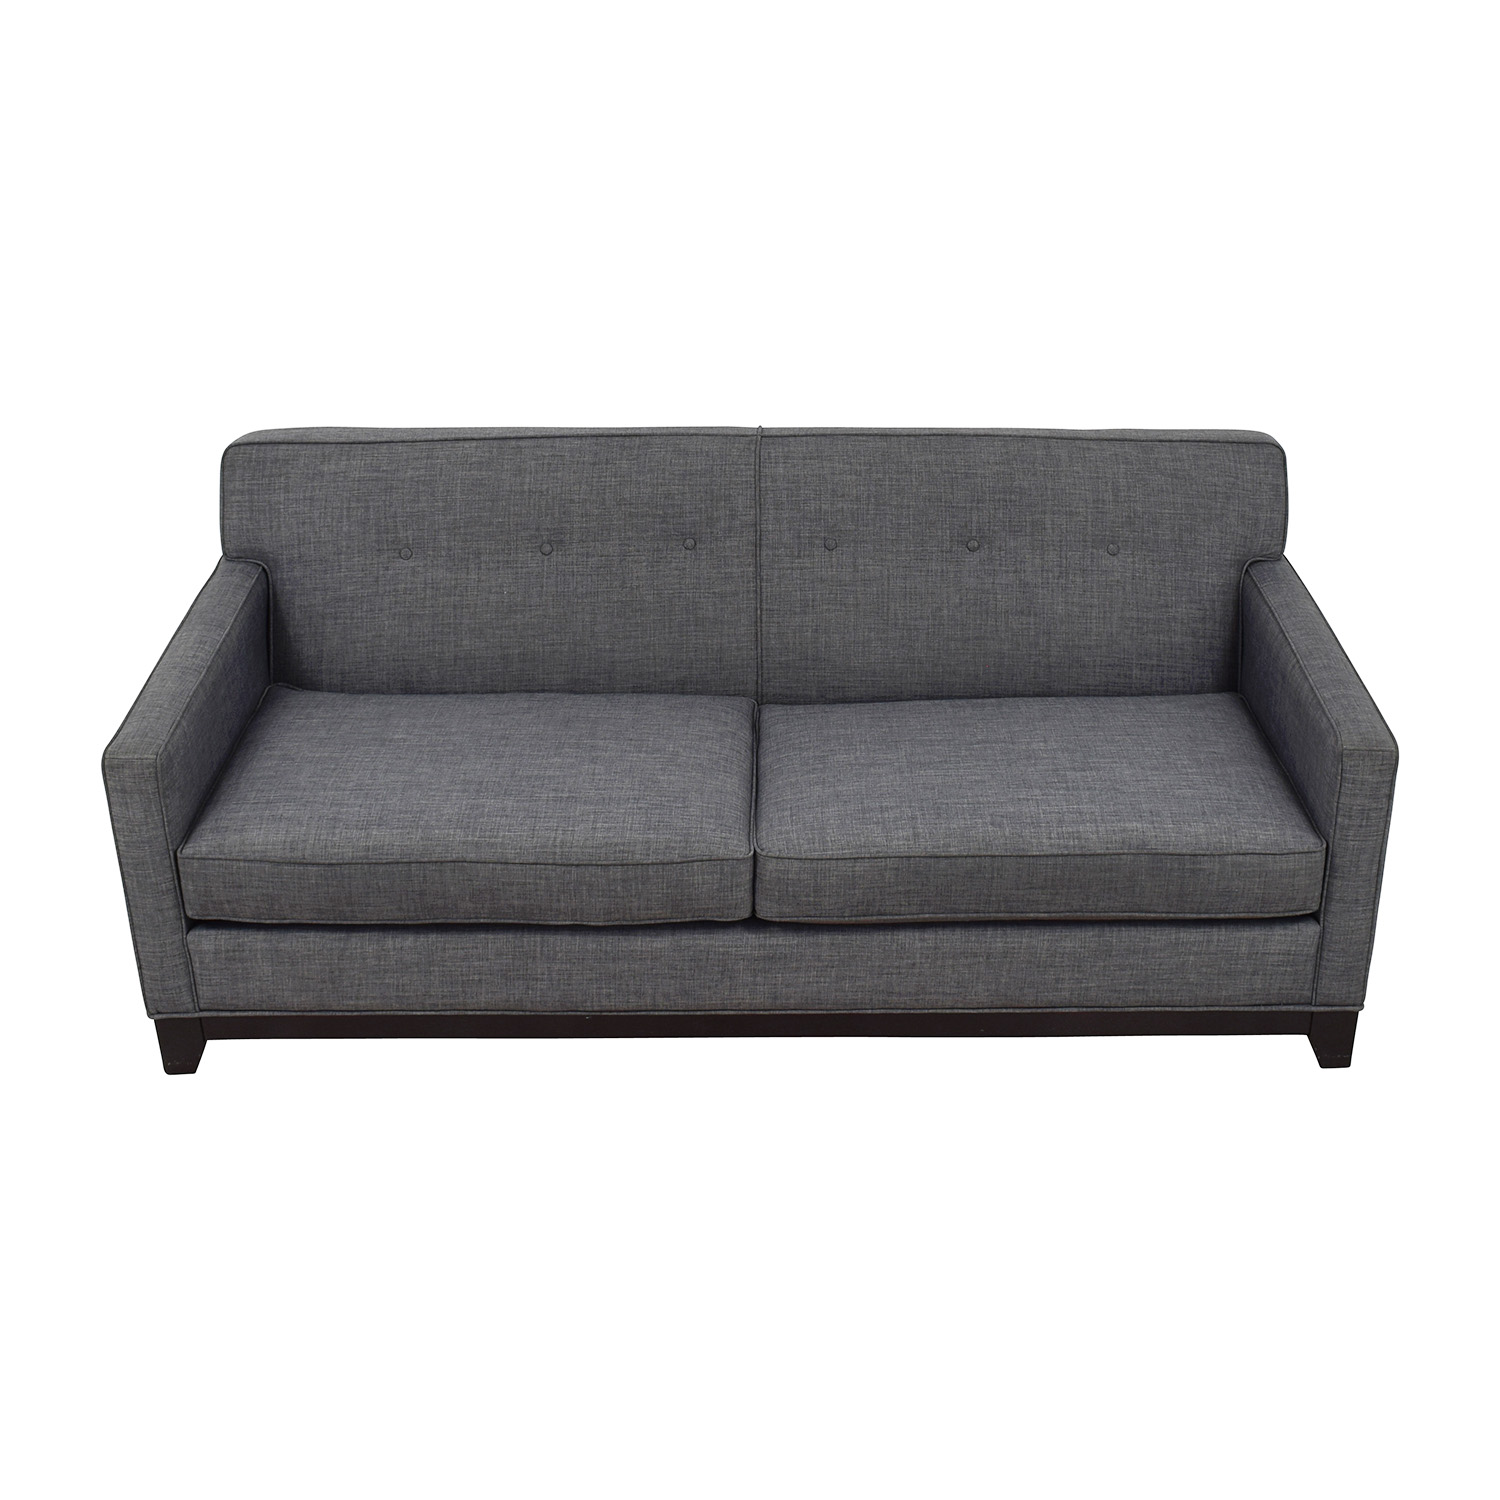 Raymour and Flanigan Raymour & Flanigan Chilson Grey Tufted Two-Cushion Sofa discount